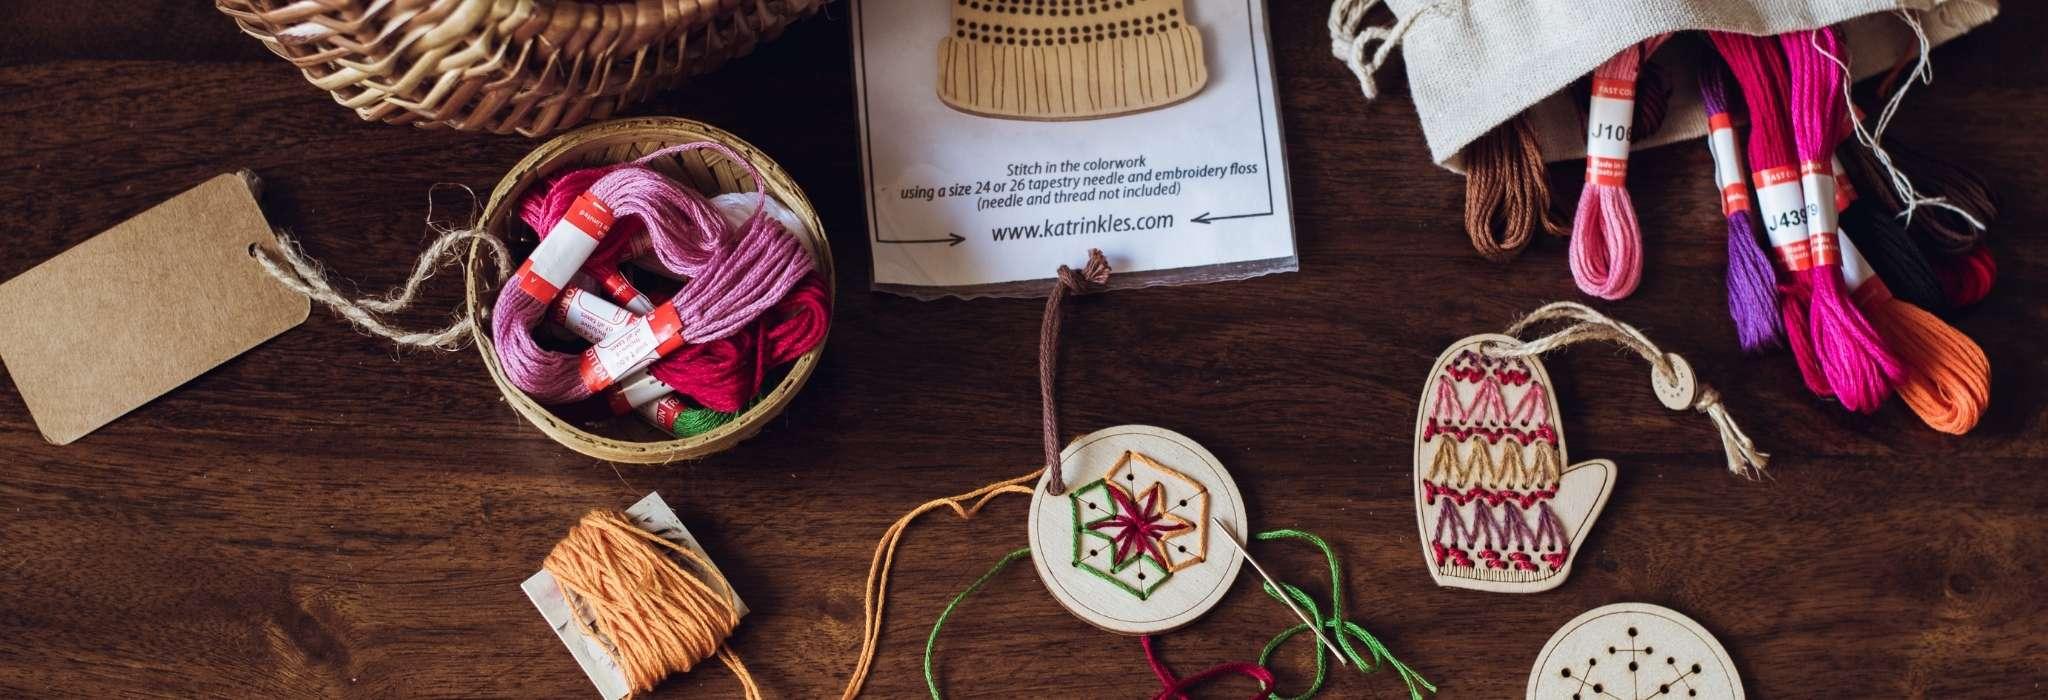 Wooden stitchable ornaments lie on a wooden surface, with stitching done in brightly coloured thread. A pile of threads and a wicker basket lie next to them.